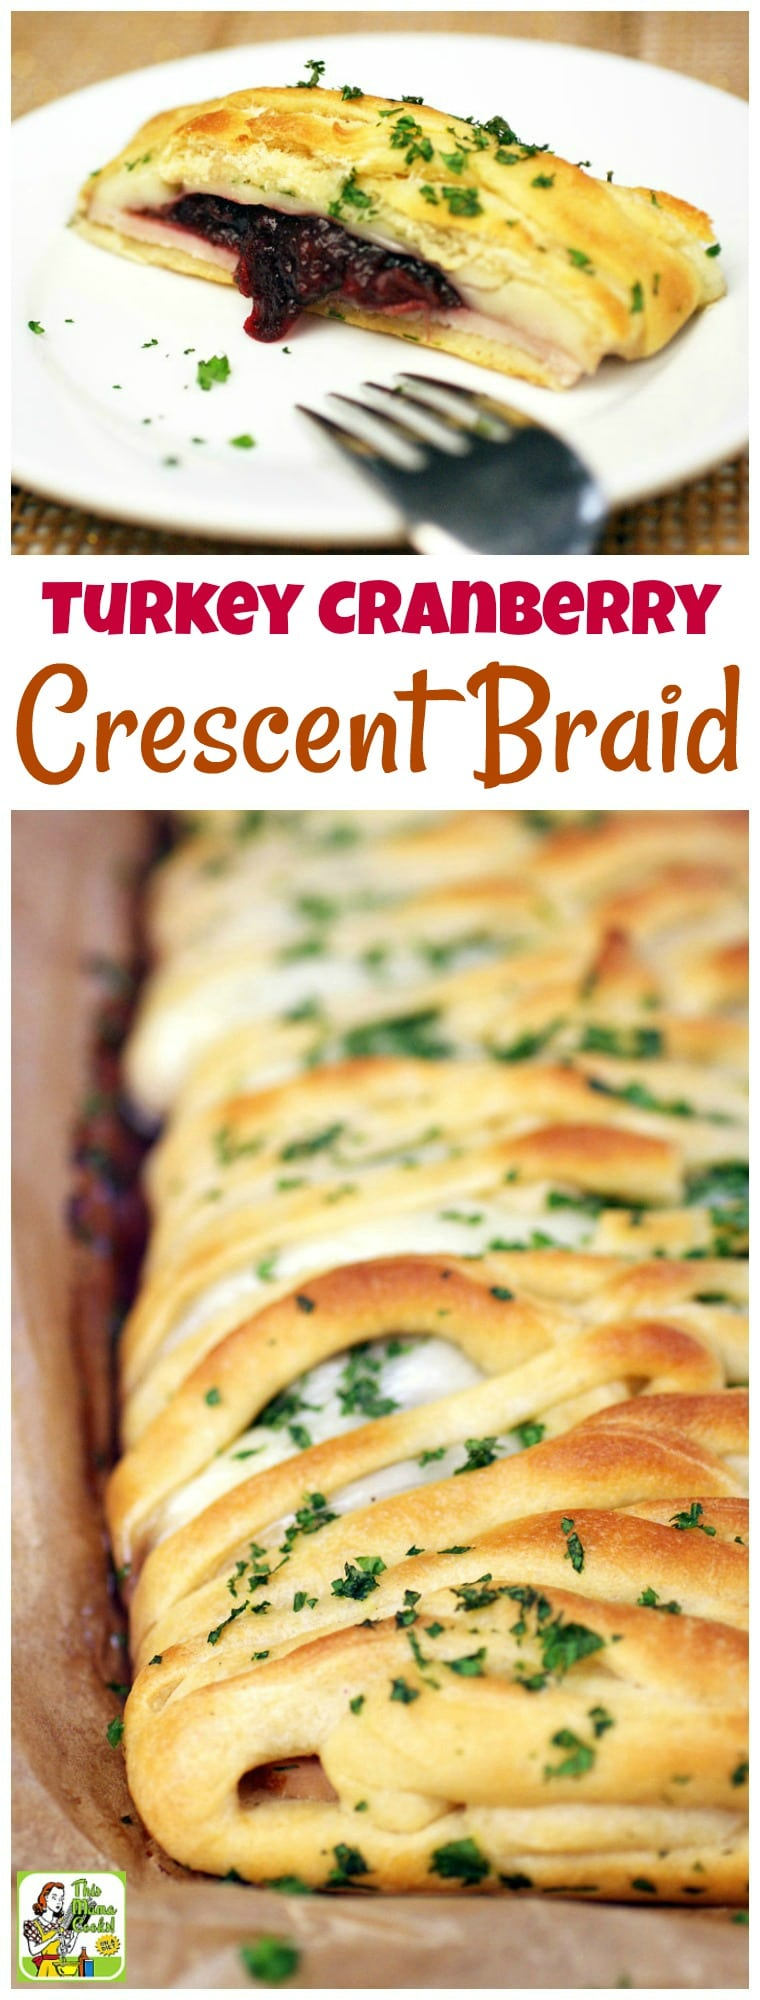 Love crescent roll appetizers? Not only is this Turkey Cranberry Crescent Braid recipe a terrific party appetizer, but it's also a thrifty way to use up holiday dinner leftovers. This will soon become one of your favorite holiday crescent rolls recipes! #recipe #easy #recipeoftheday  #easyrecipes #crescentrolls #appetizers #holidayrecipes #leftovers #turkey #cranberry #partyfood #crescentbraid #thanksgiving #christmas